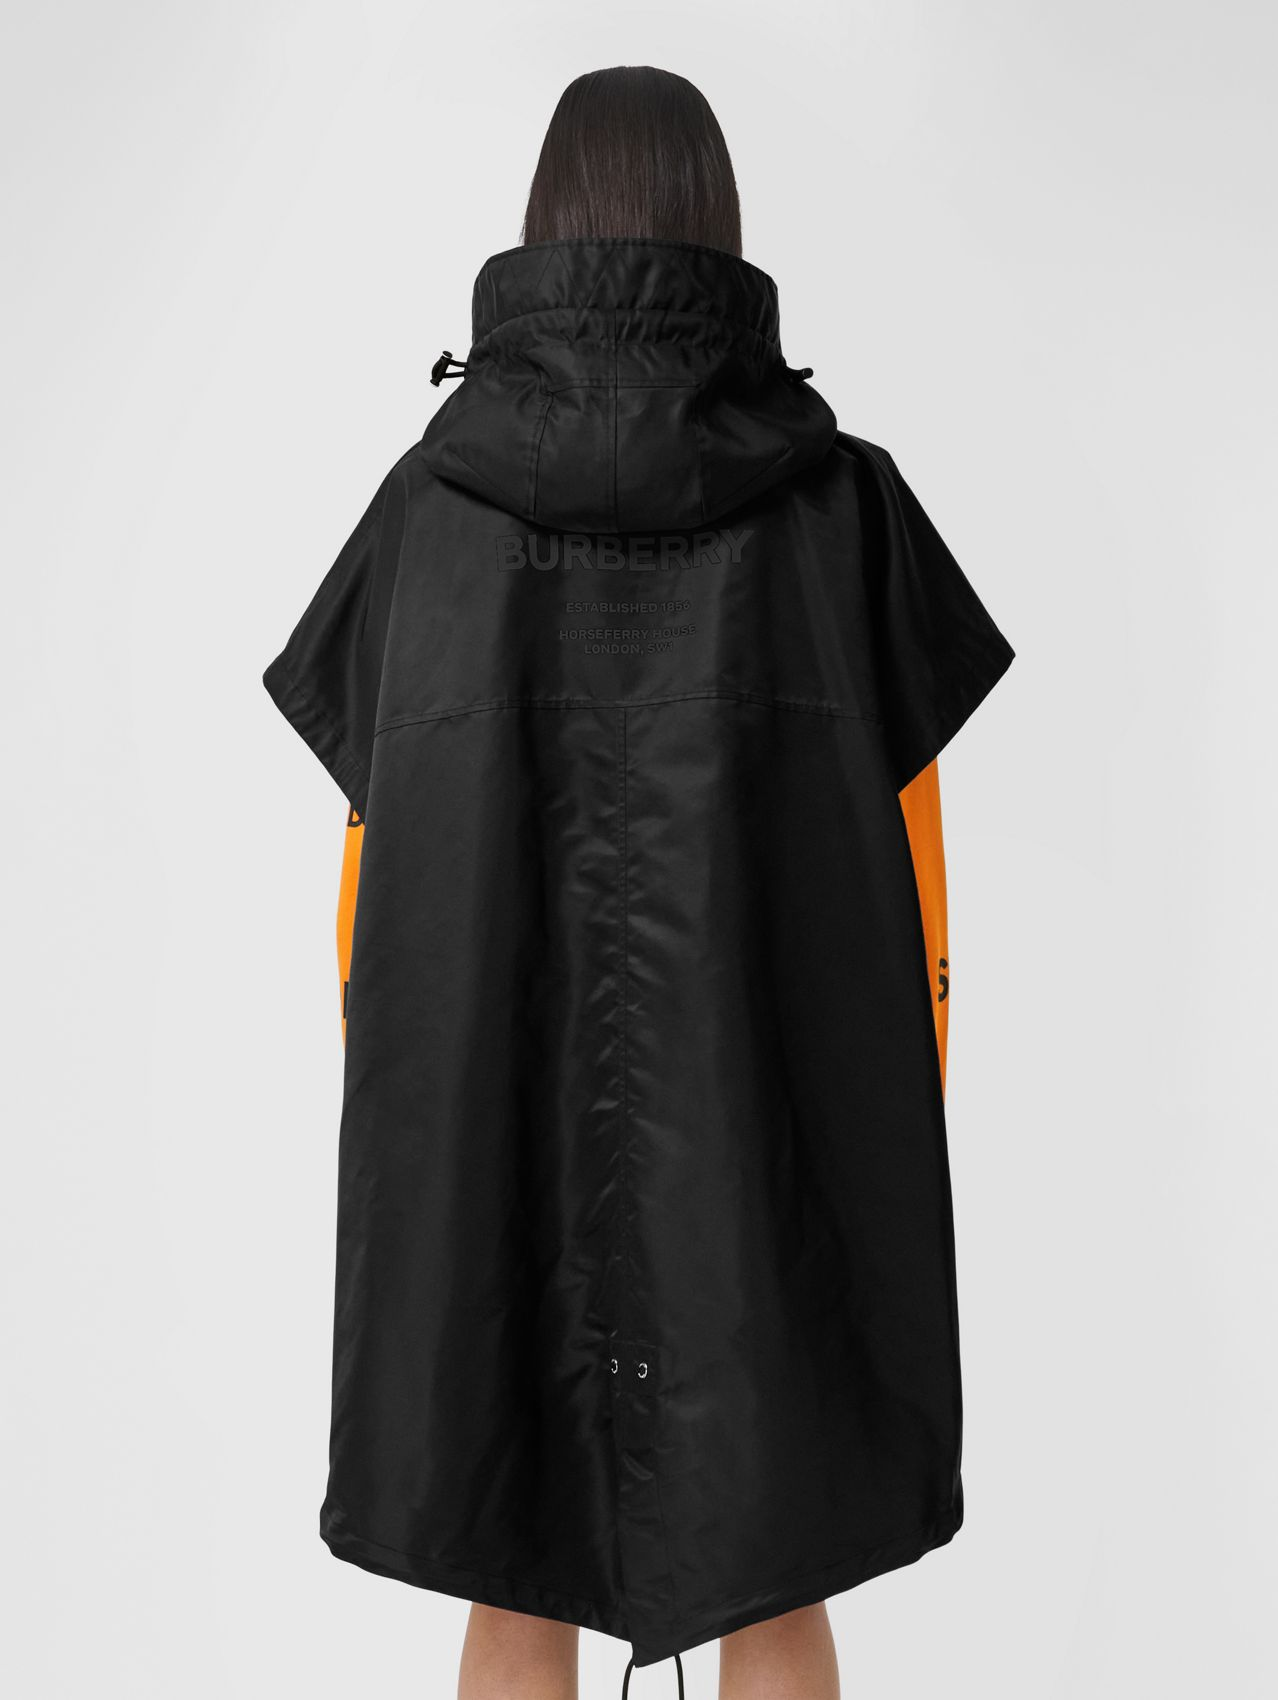 Horseferry Print Recycled Nylon Hooded Cape in Black